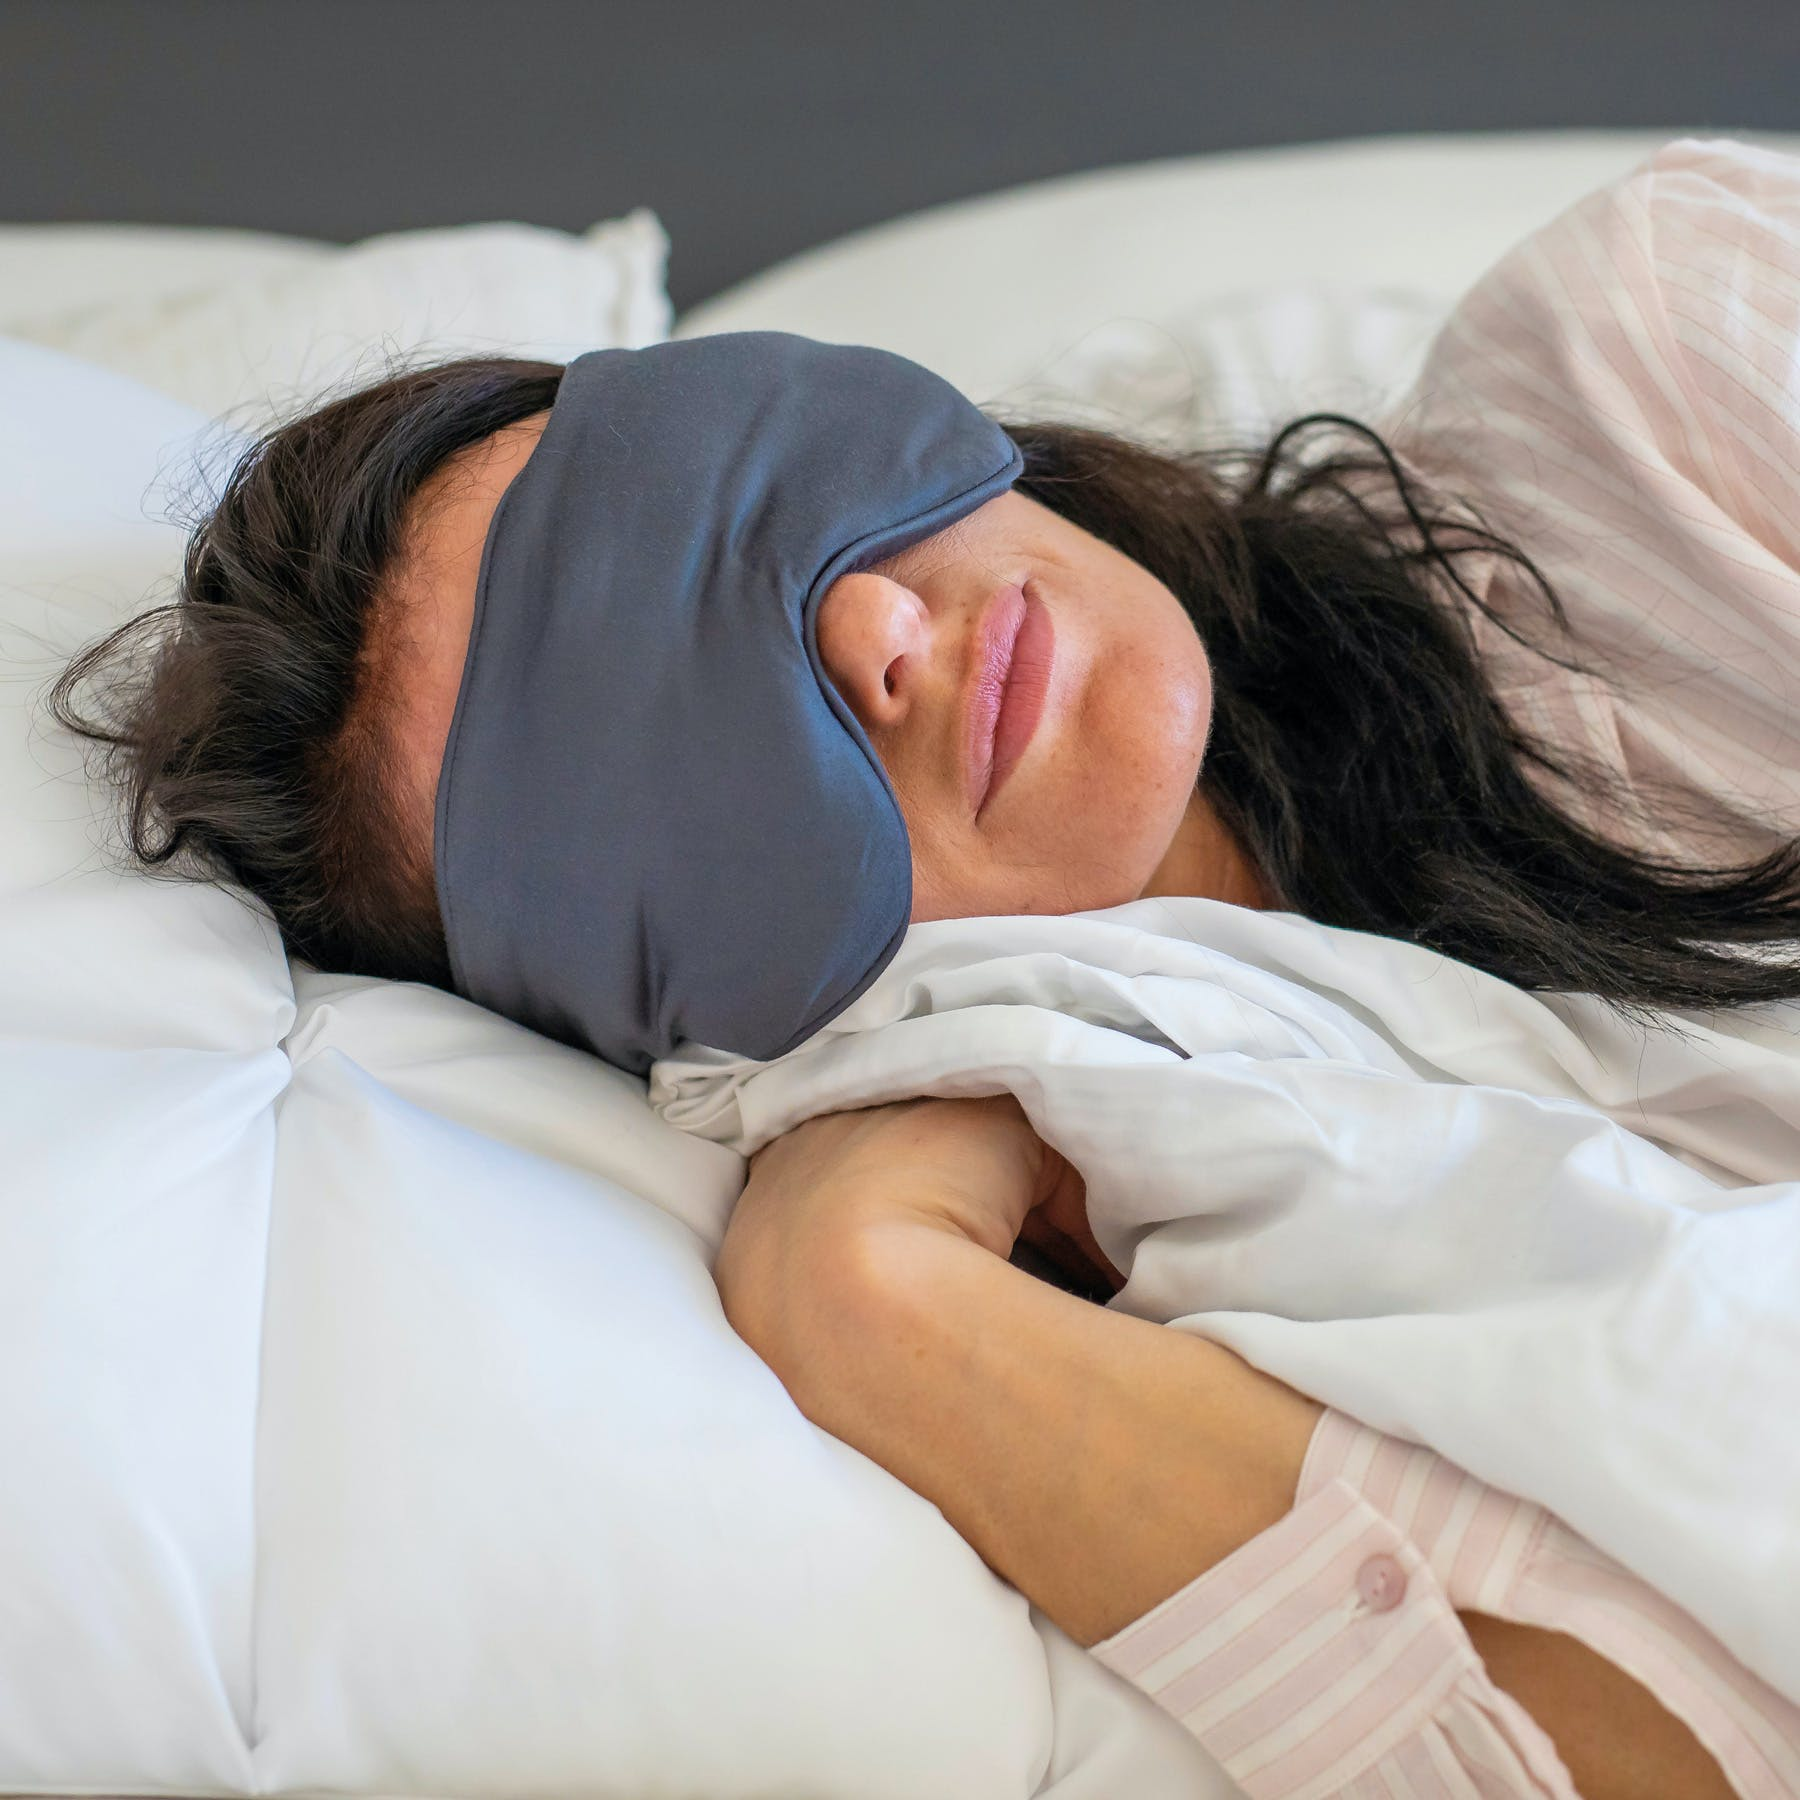 CURA weighted sleepmask